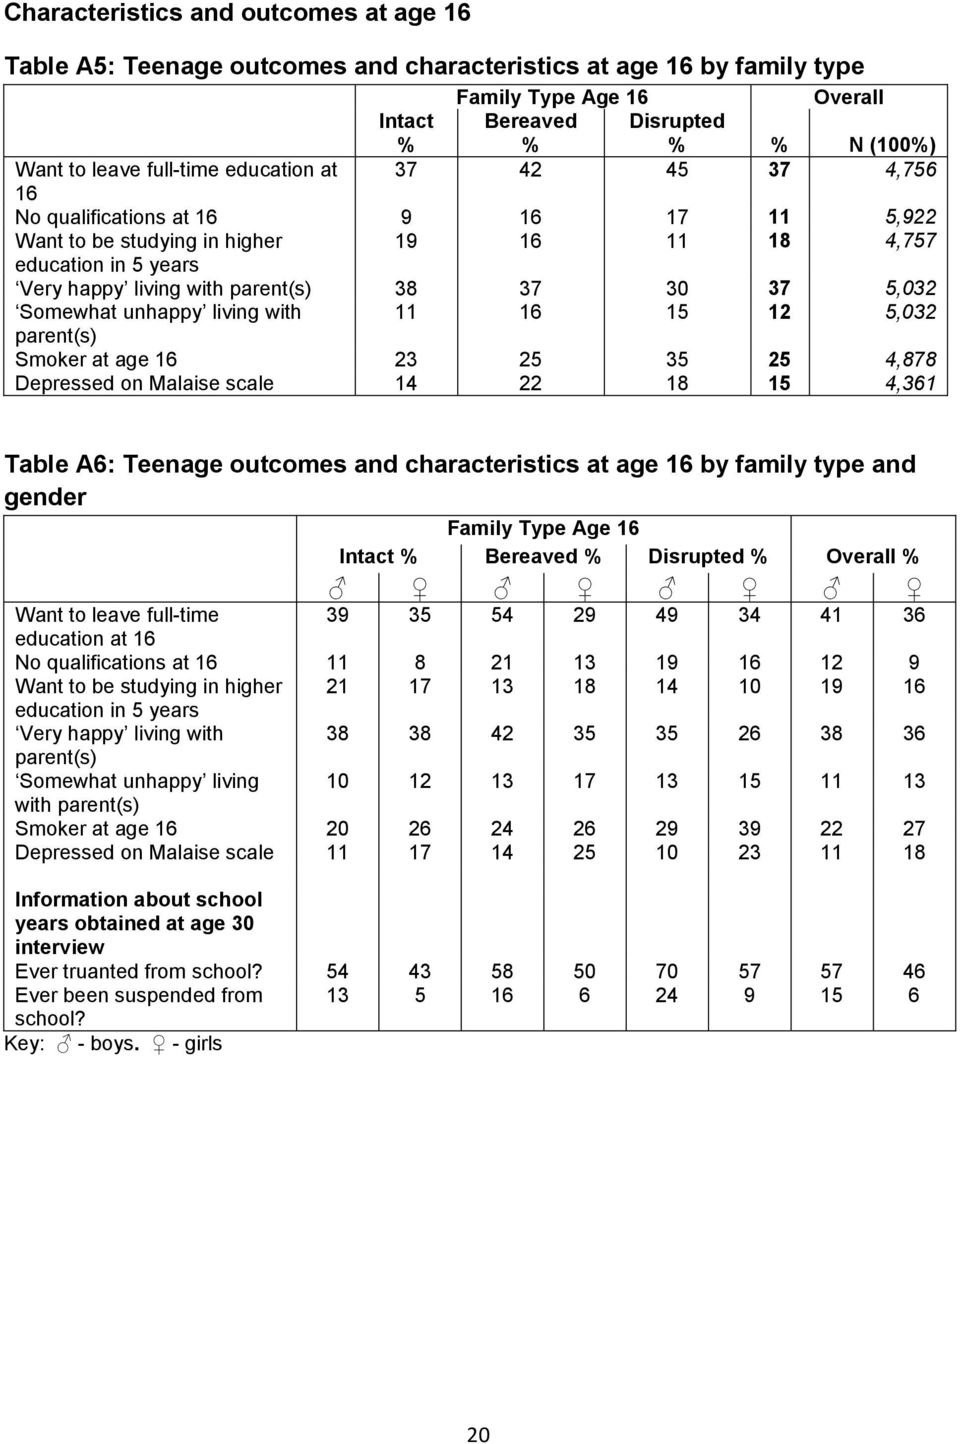 5,032 Somewhat unhappy living with 11 16 15 12 5,032 parent(s) Smoker at age 16 23 25 35 25 4,878 Depressed on Malaise scale 14 22 18 15 4,361 Table A6: Teenage outcomes and characteristics at age 16